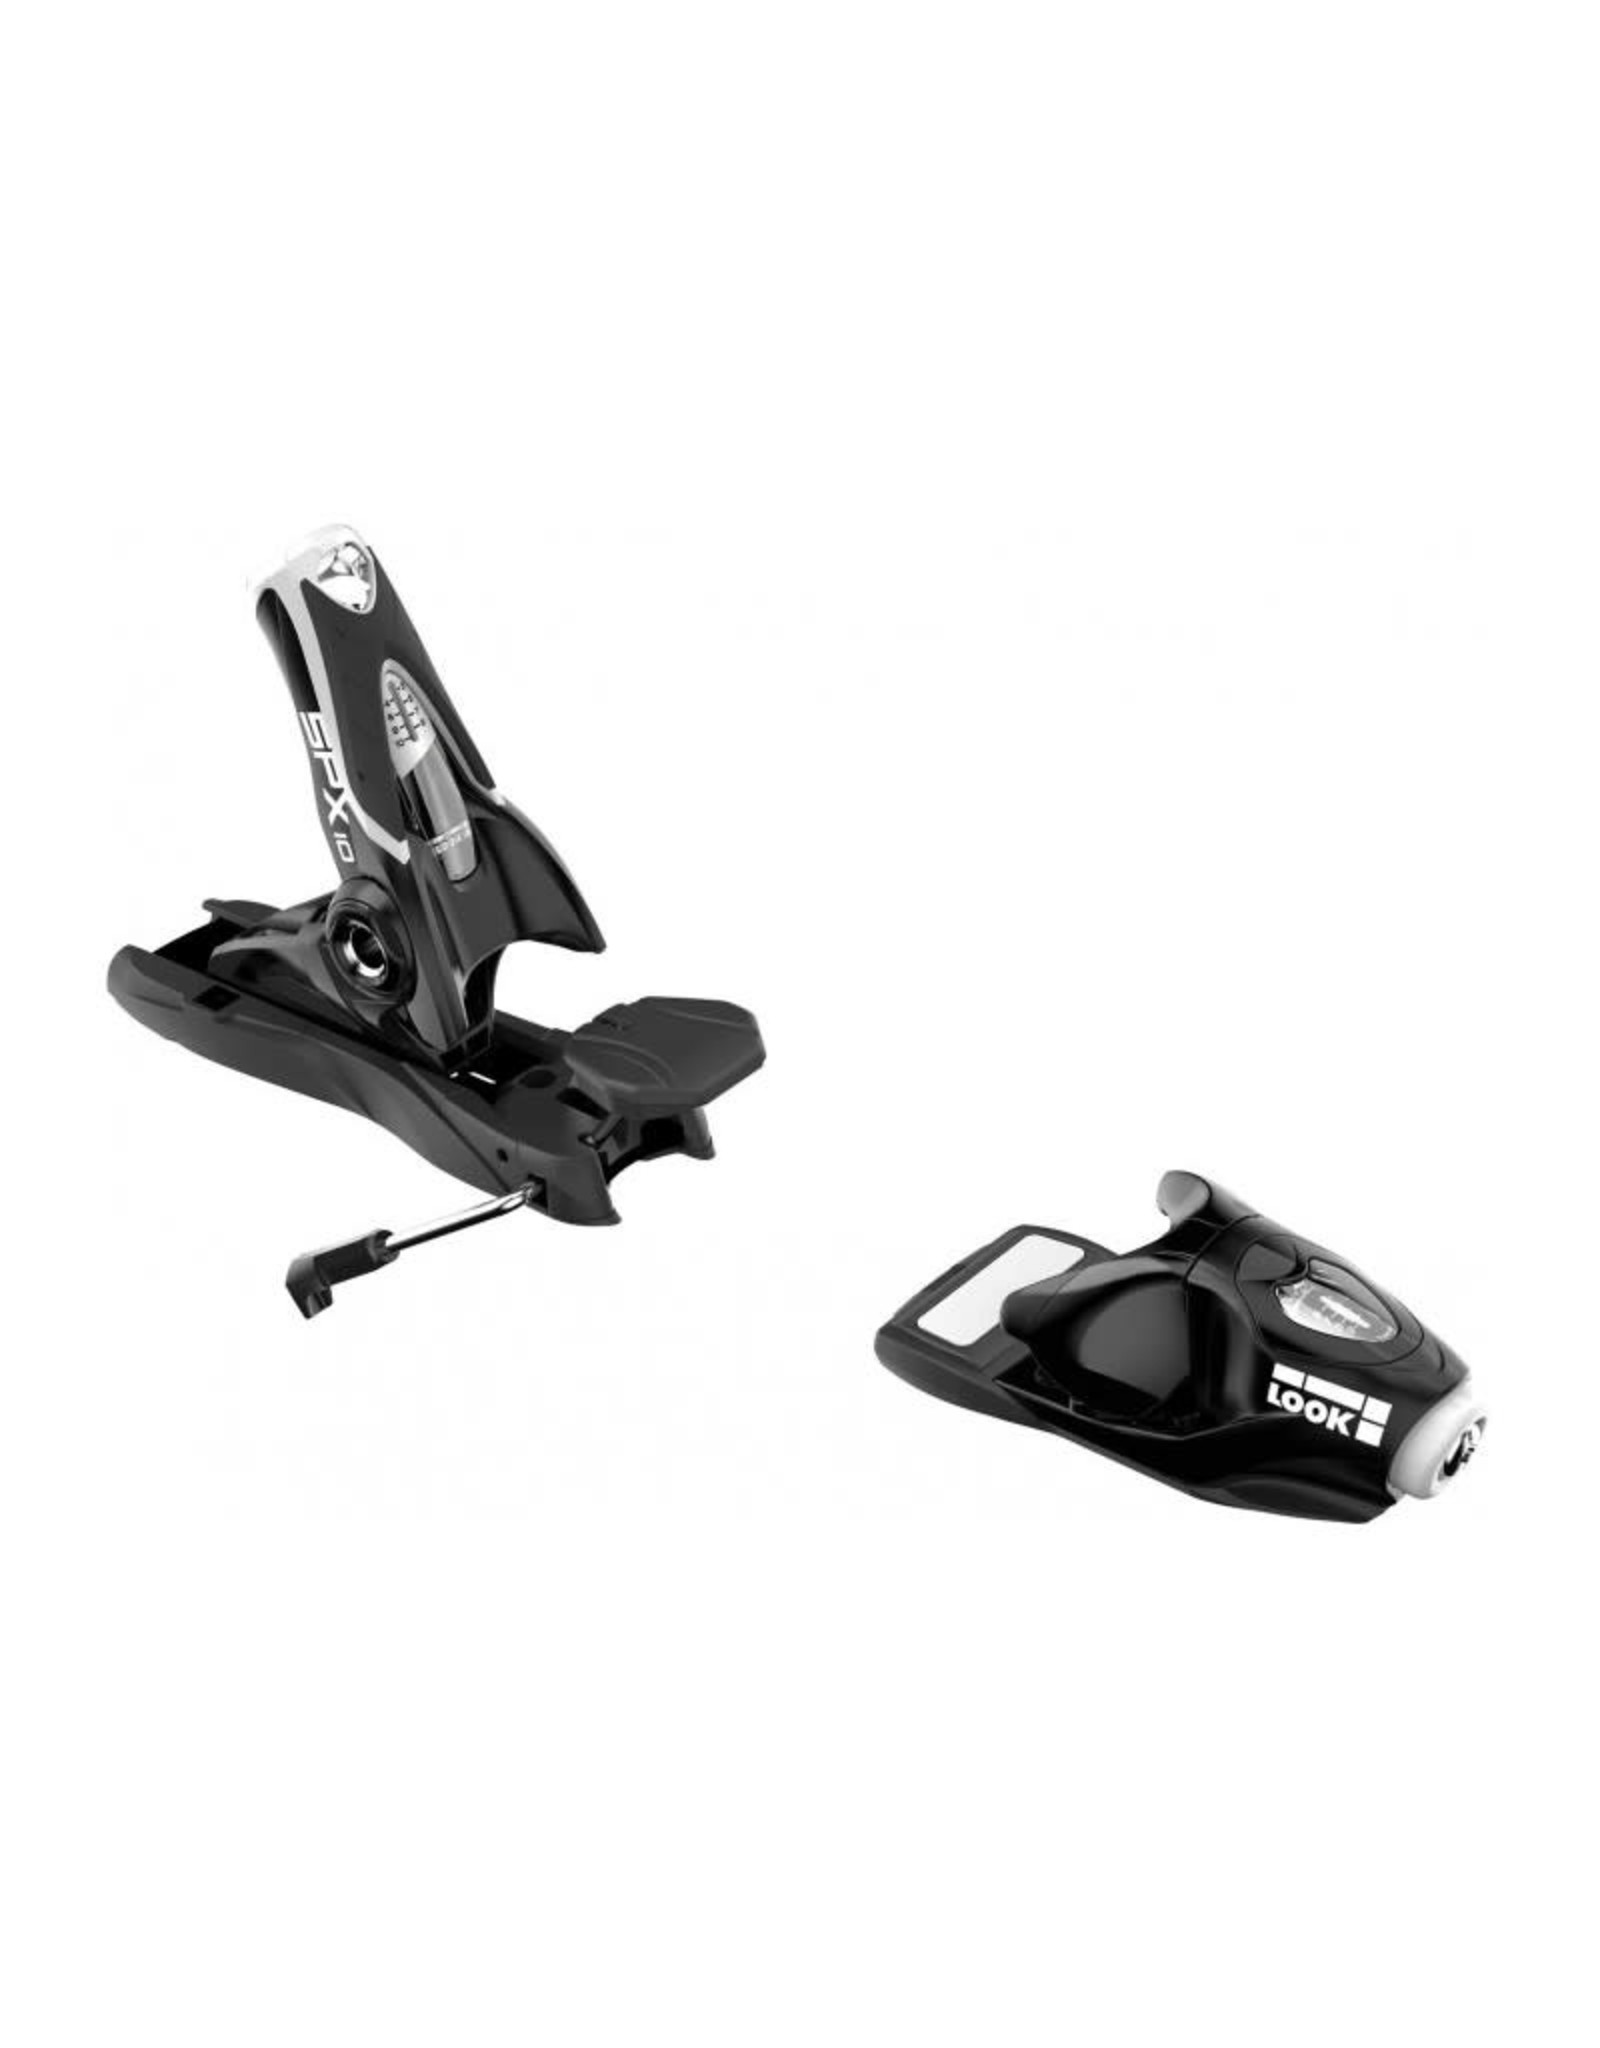 Look Ski Bindings SPX10 B100